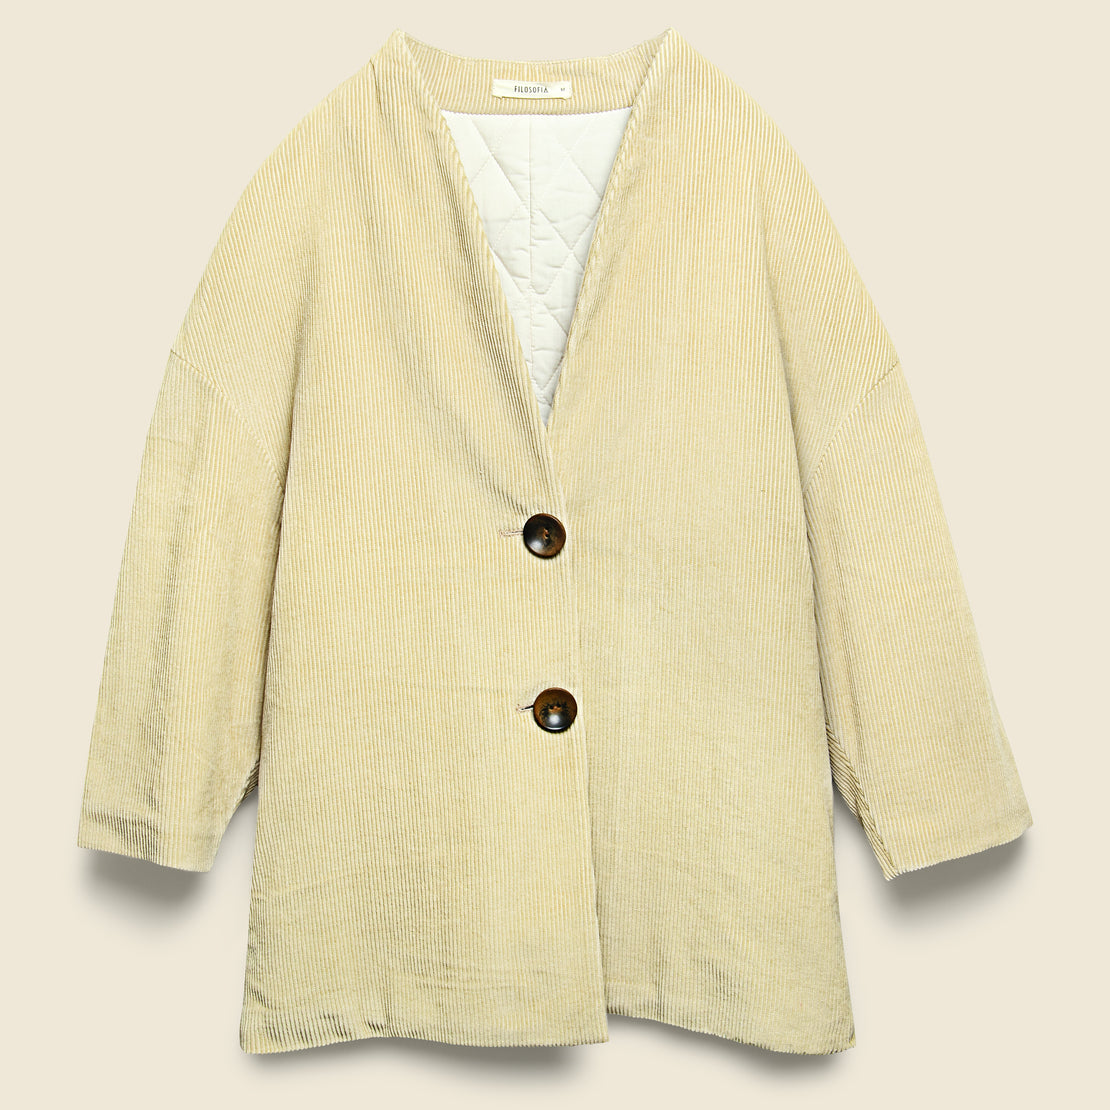 Filosofia Isabella Padded Corduroy Coat - Light Beige